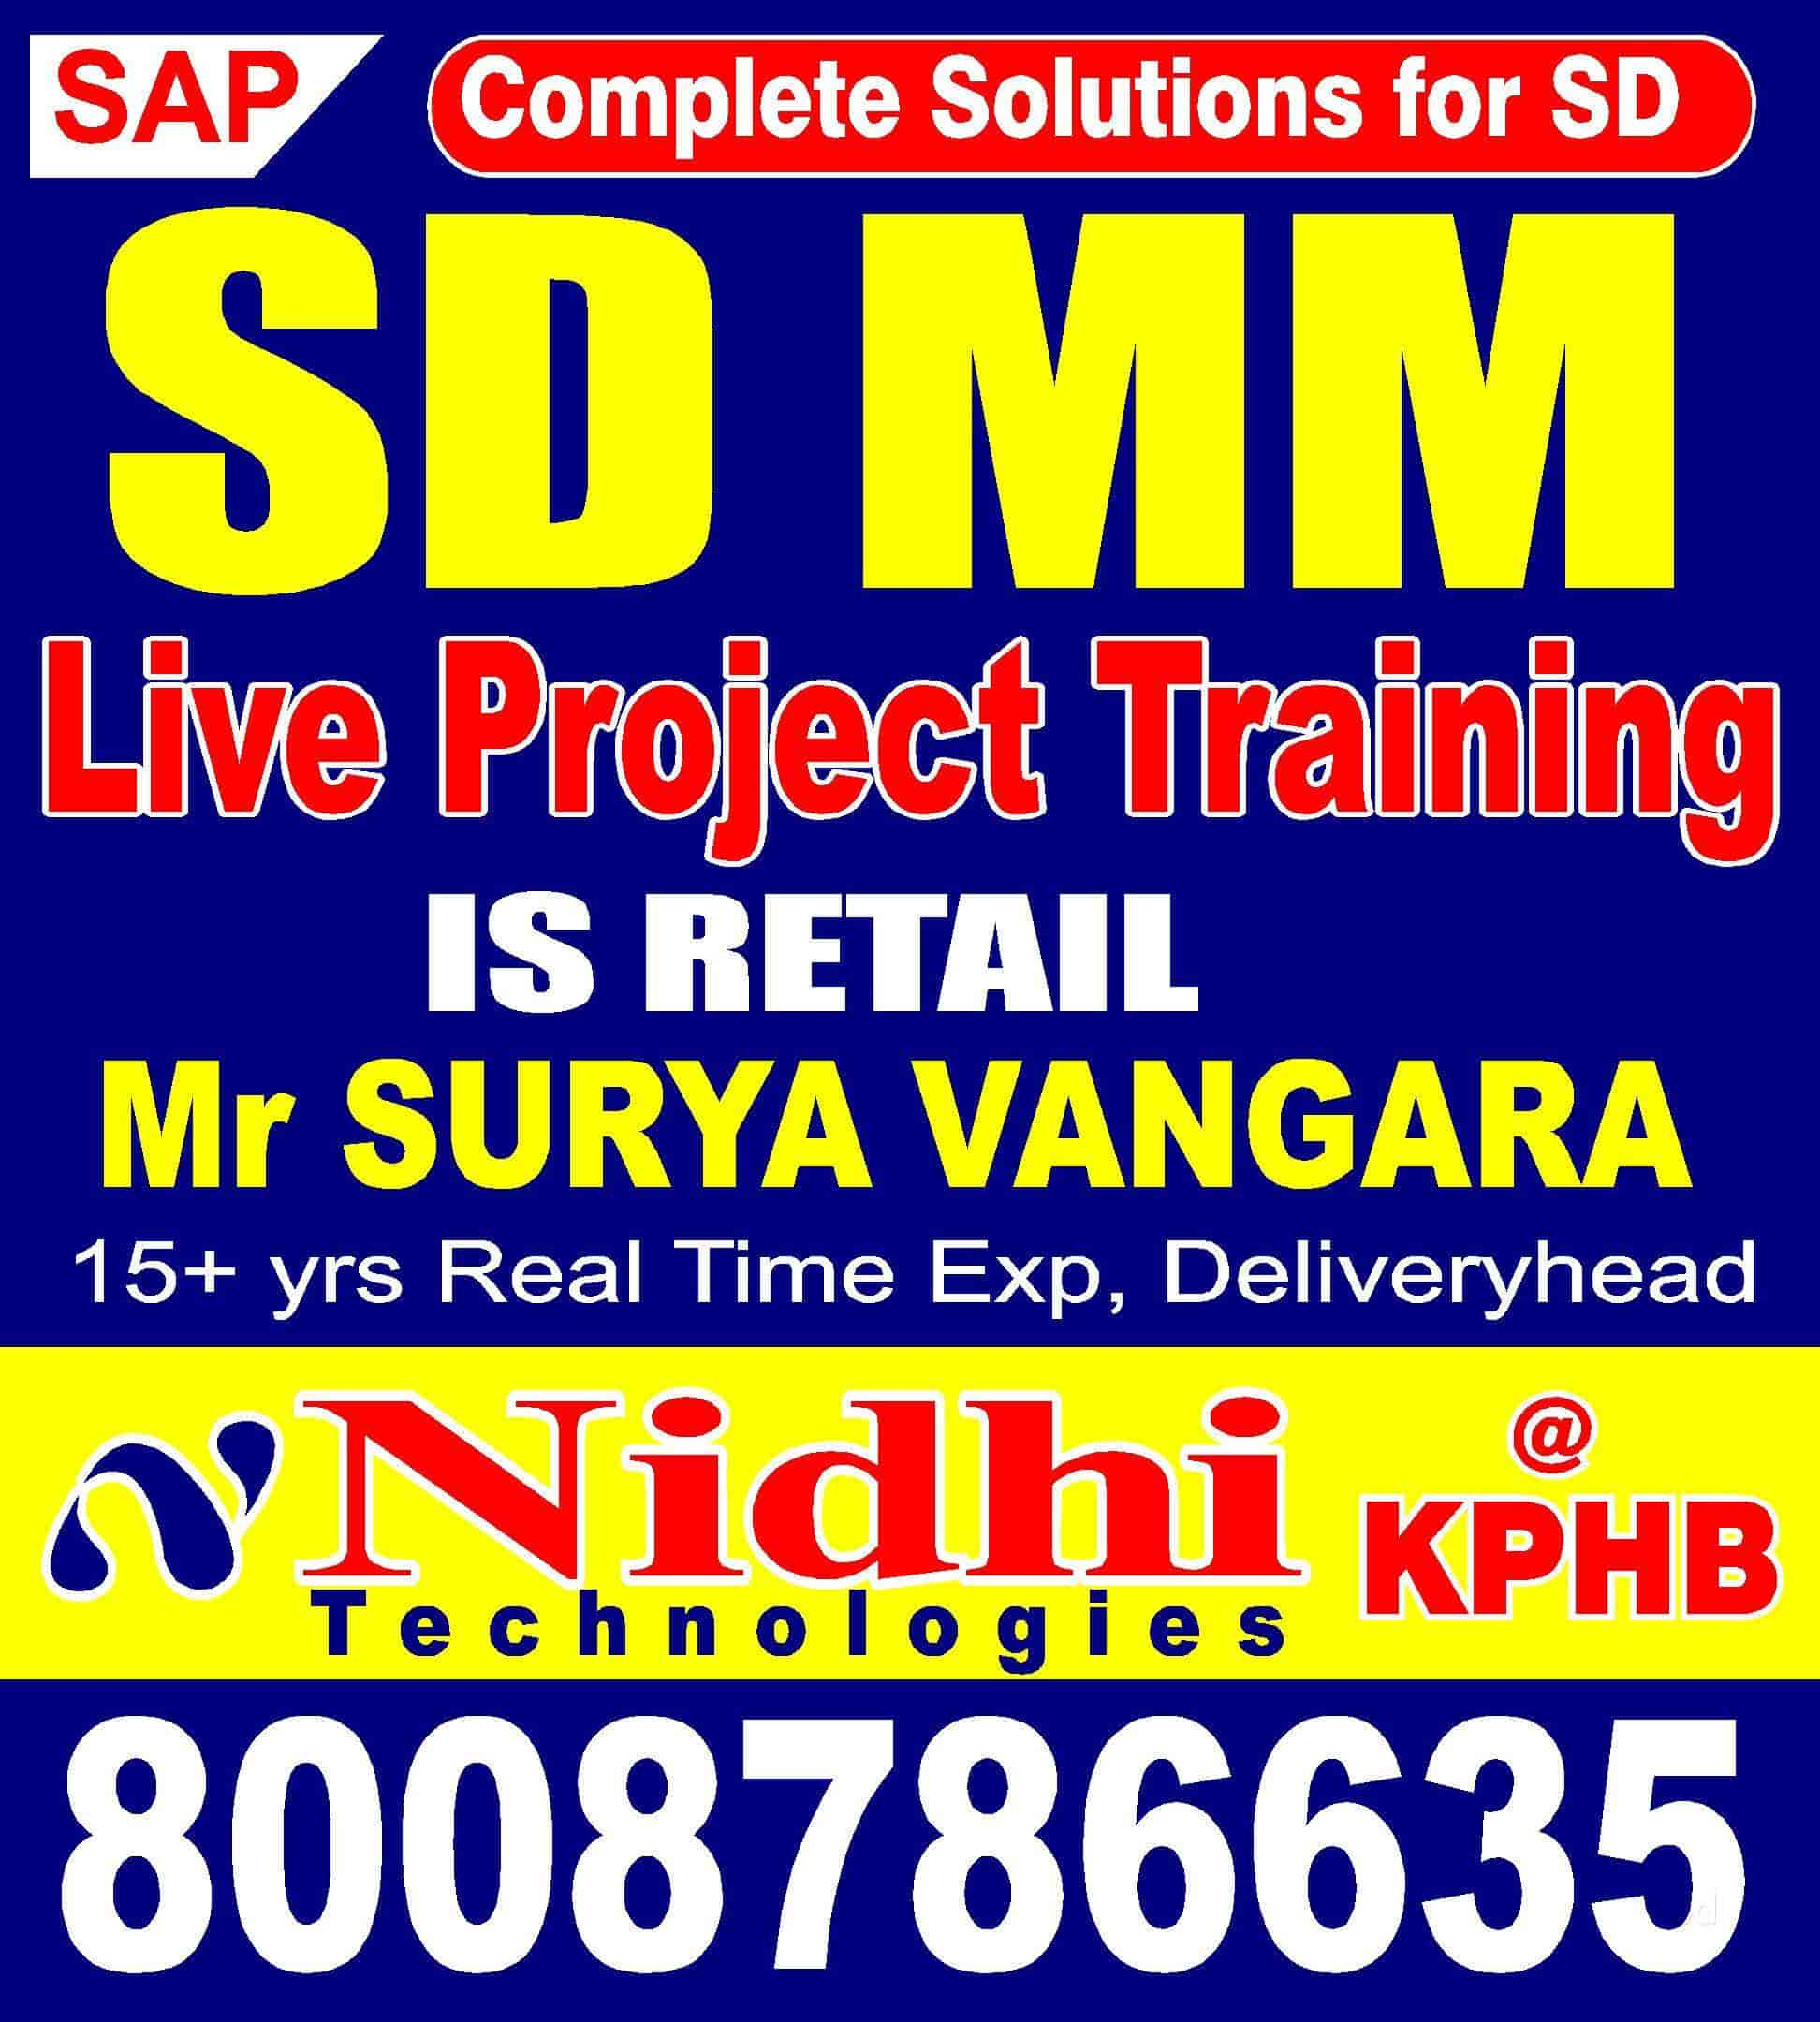 hight resolution of nidhi technologies kphb colony computer training institutes for sap sd in hyderabad justdial